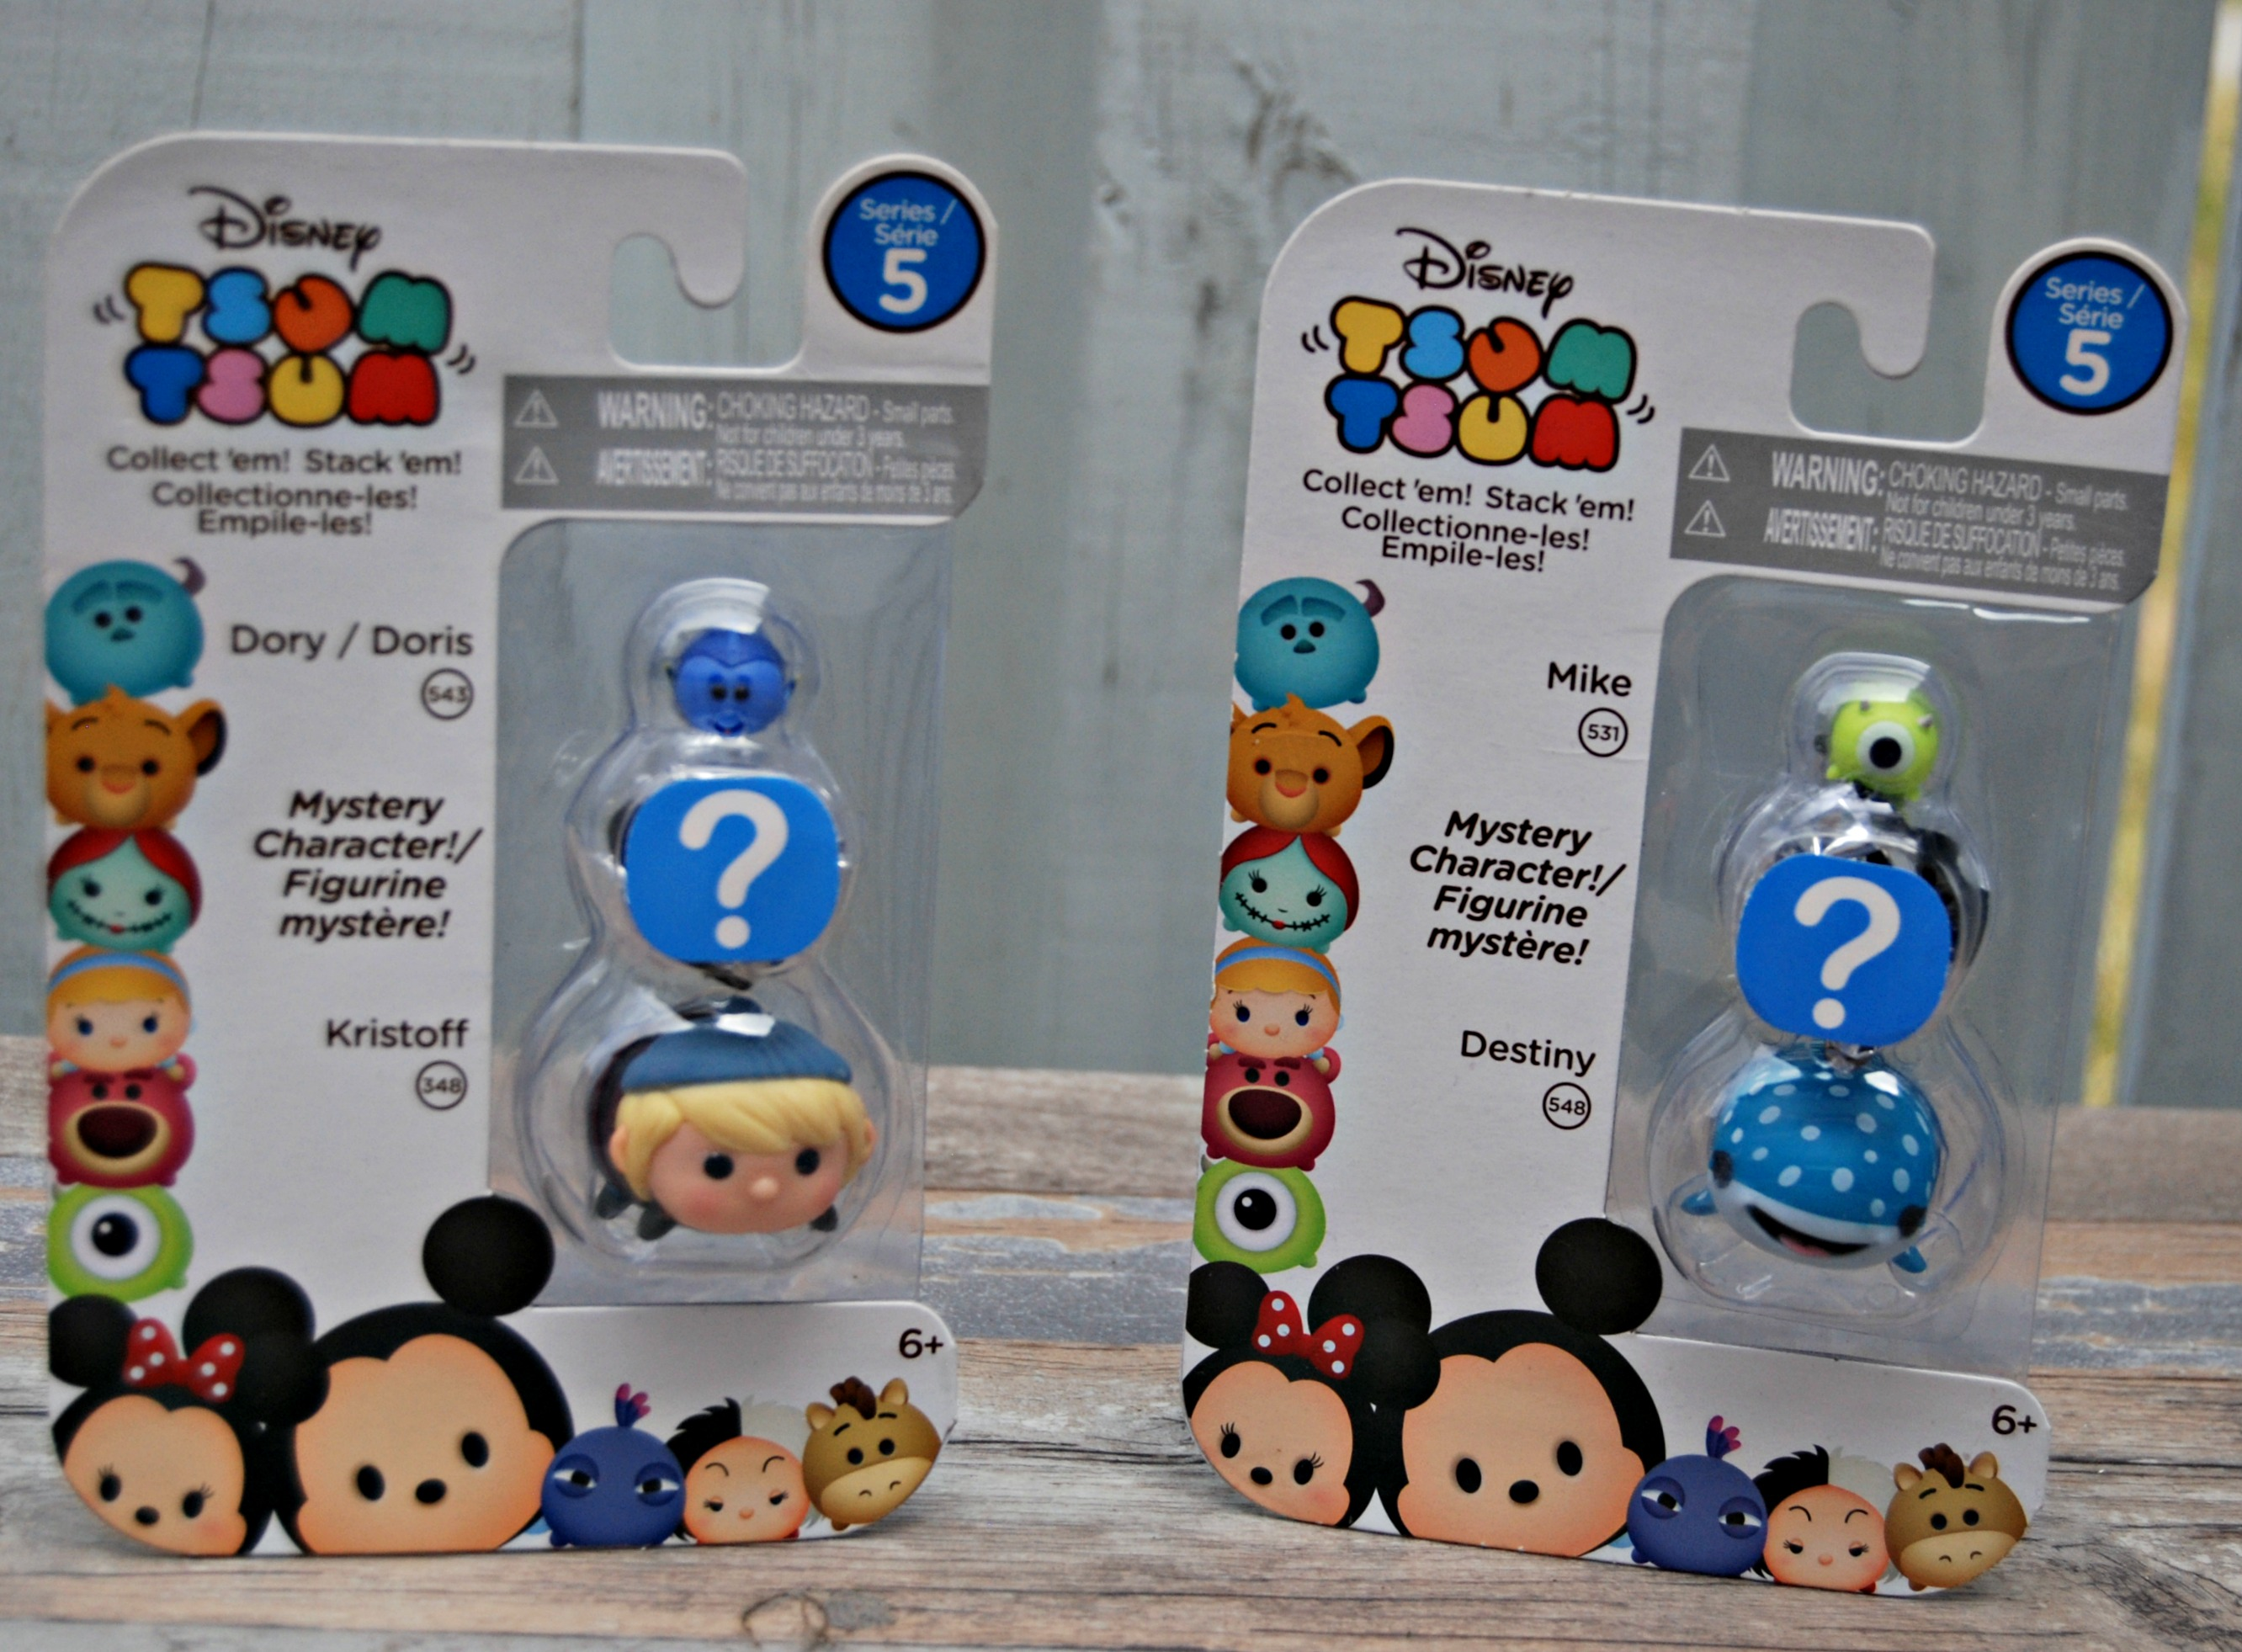 Tsum Tsum Small Toys The Offer Big Fun Naturally Cracked